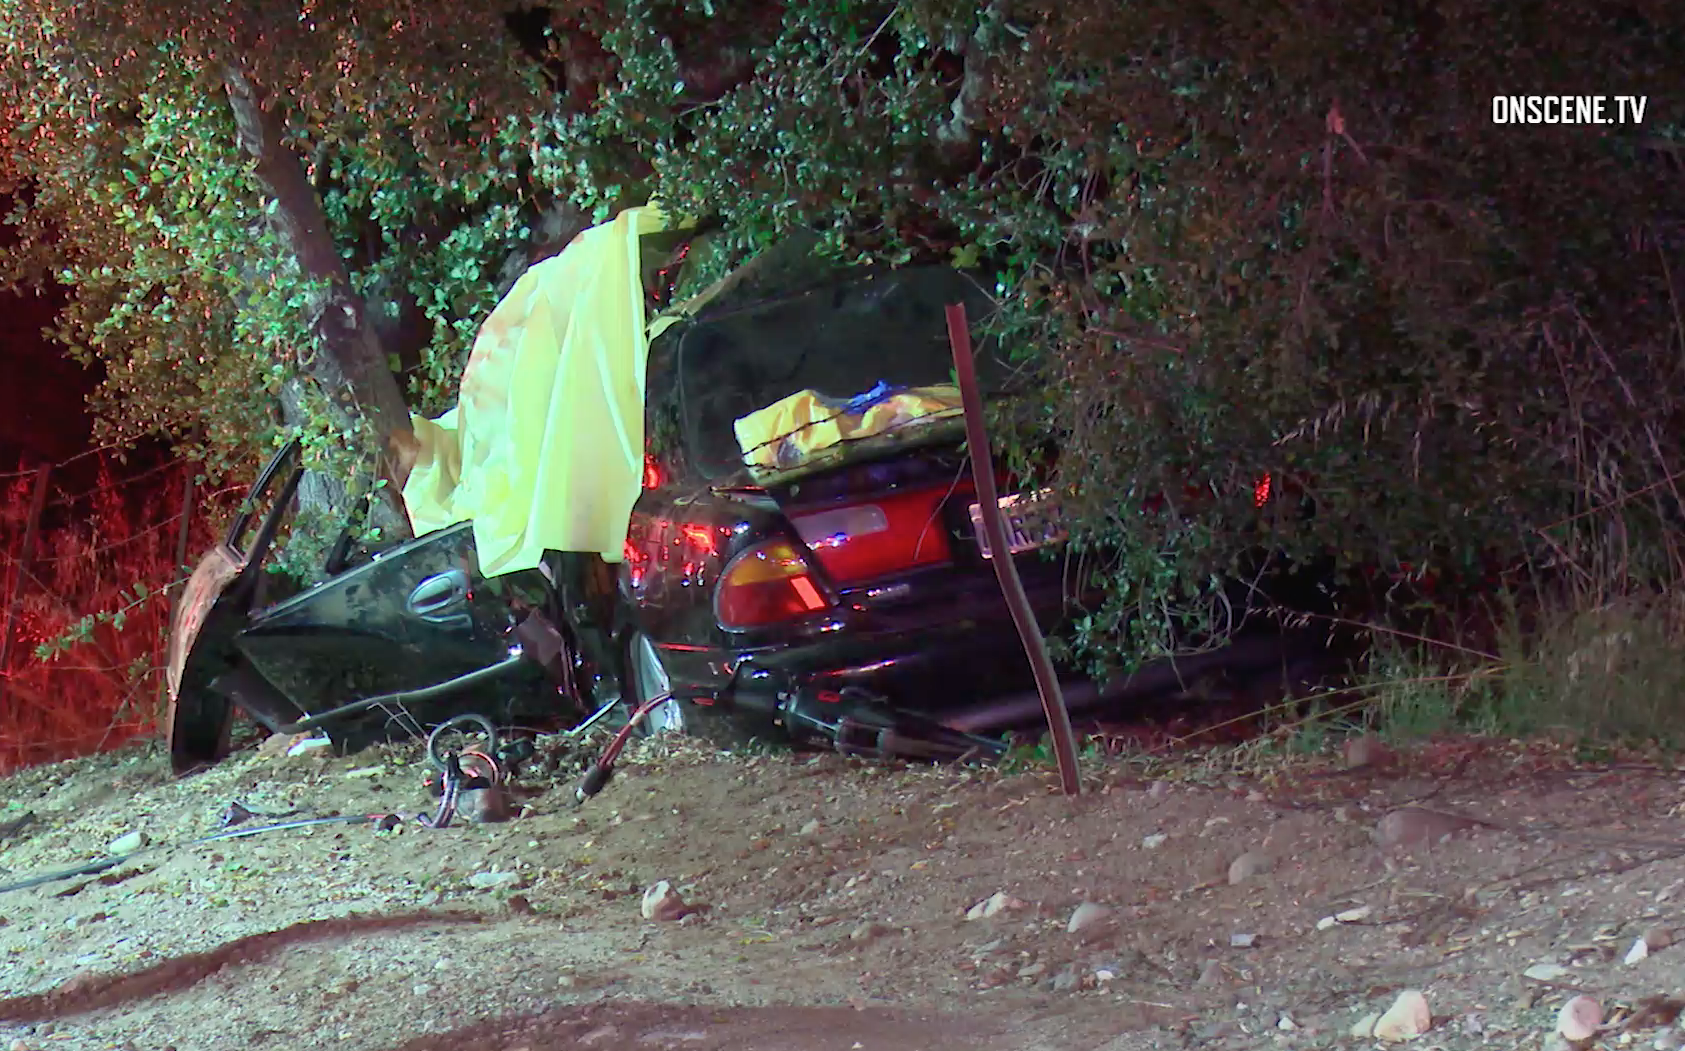 A vehicle slammed into a tree in Silverado Canyon on May 25, 2019. (Credit: Onscene.tv)